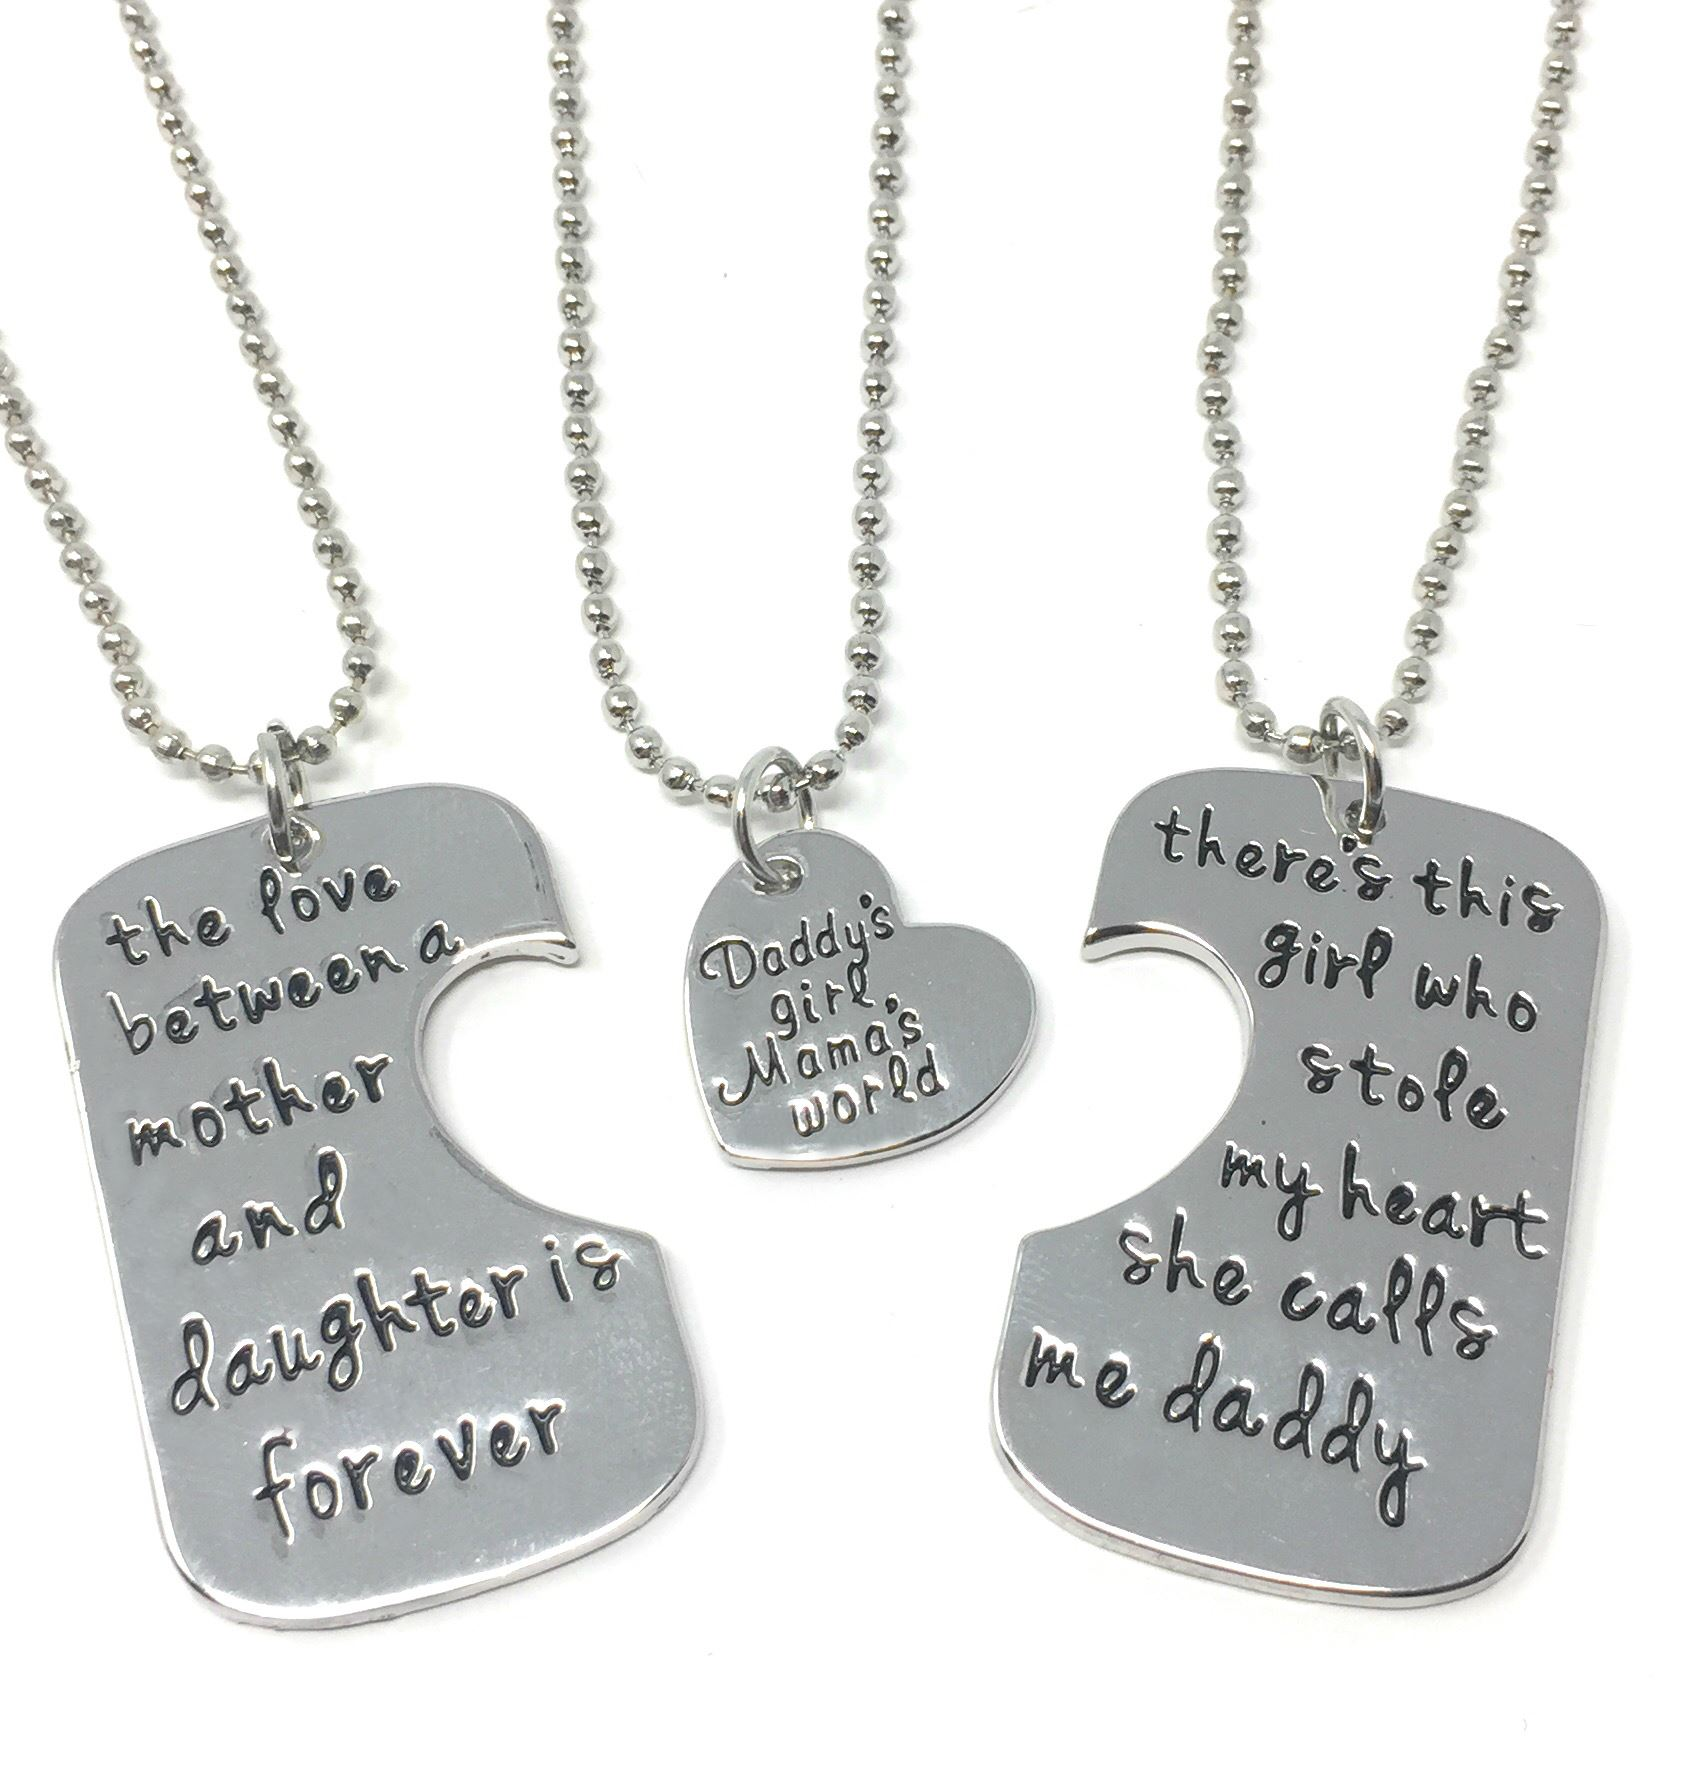 UK-Shop-925-SILVER-PLT-039-DADDY-039-S-GIRL-MAMA-039-S-WORLD-039-STOLE-MY-HEART-LOVE-FOREVER thumbnail 6